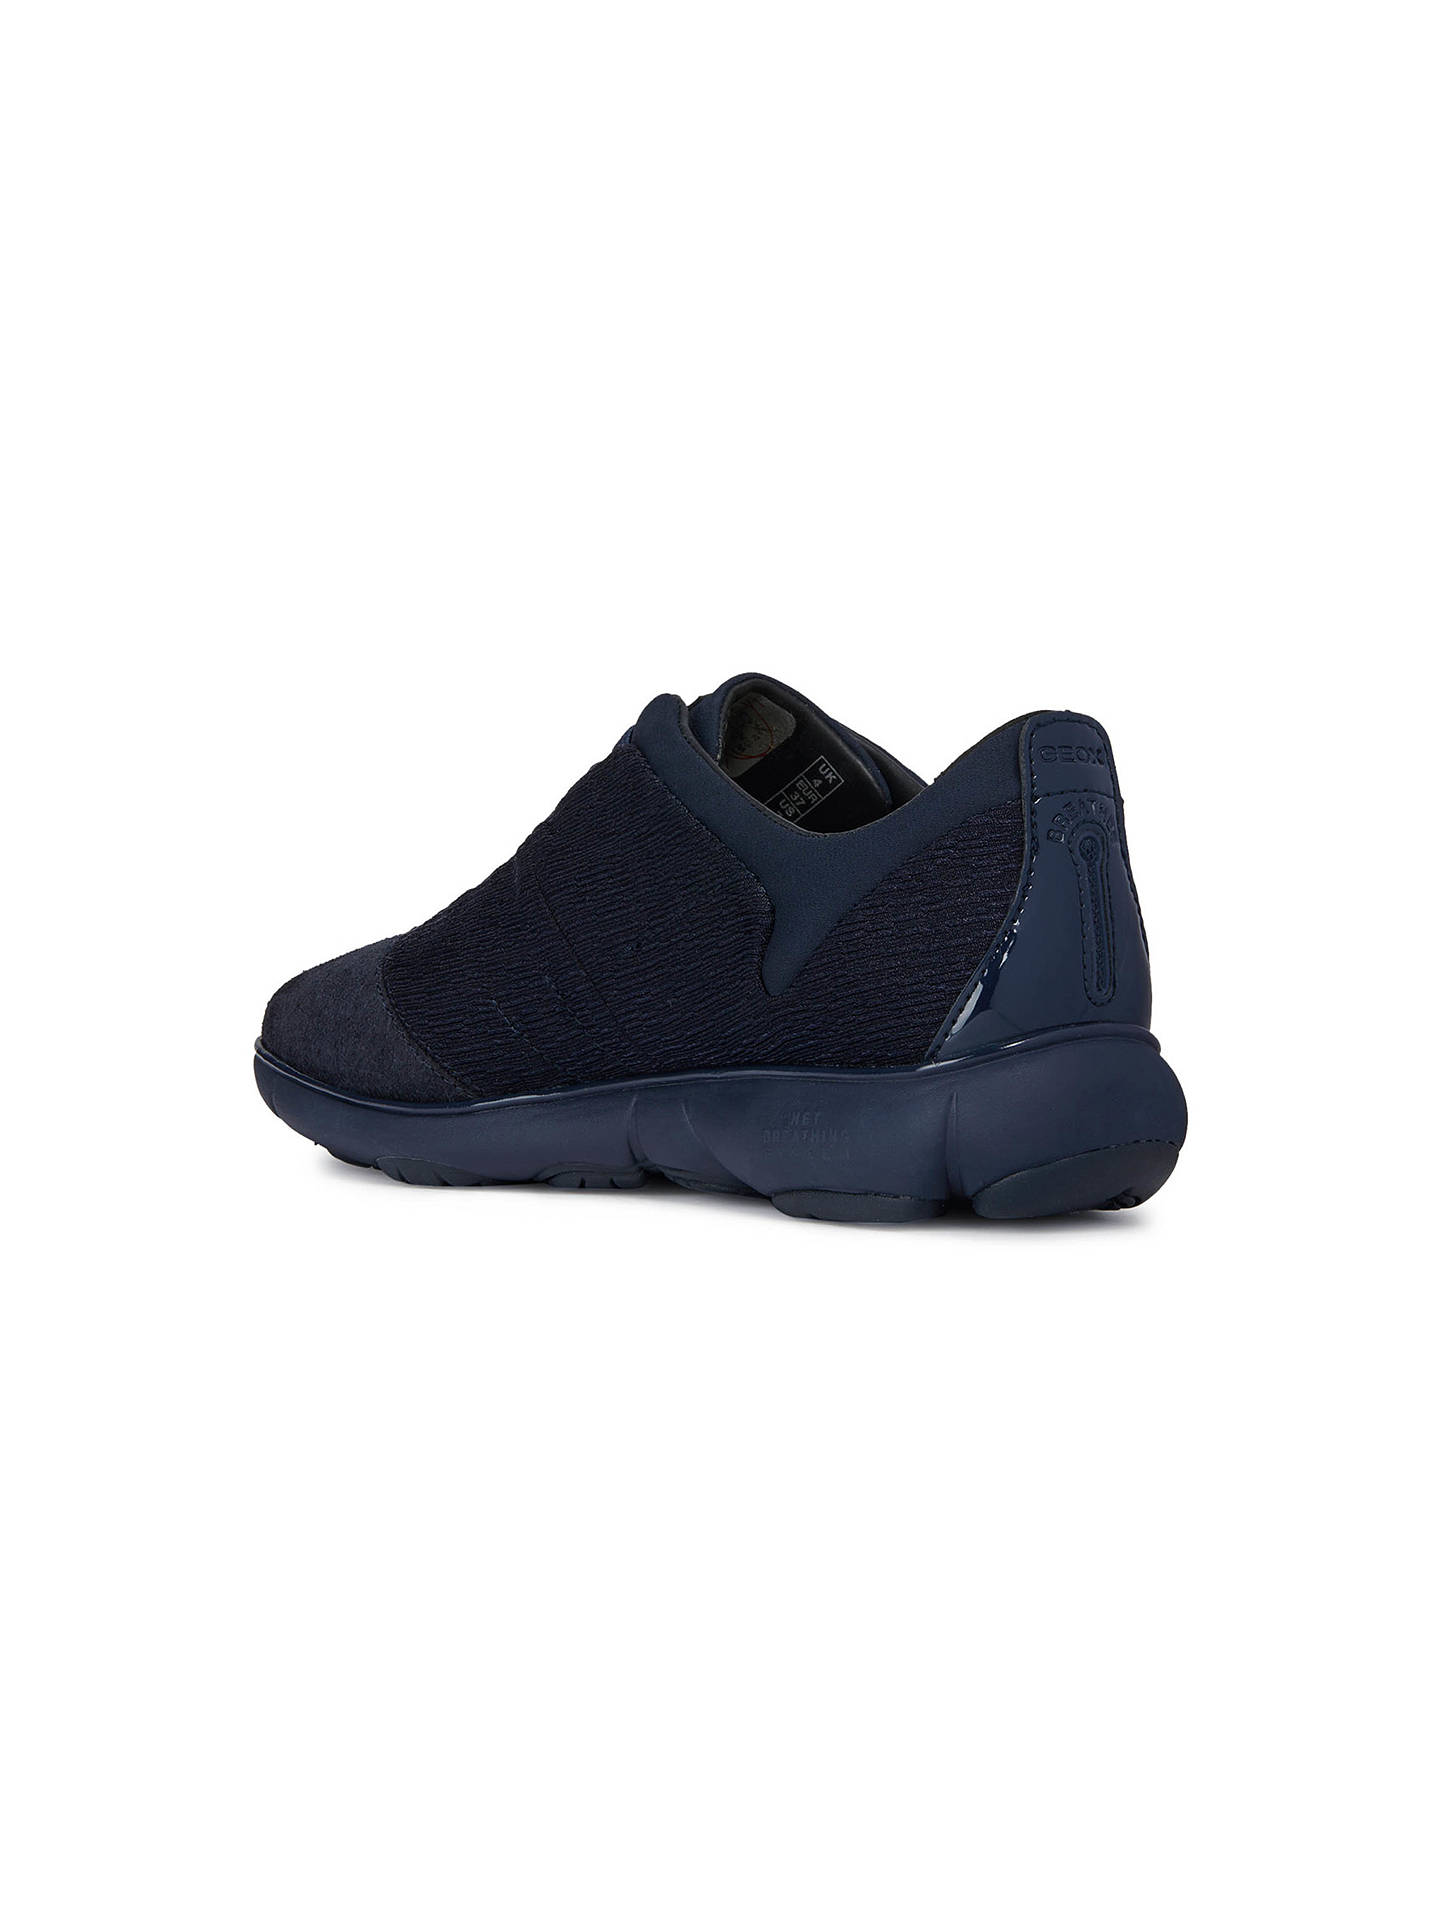 f5c70e5ba52 Buy Geox Women's Nebula Breathable Slip On Trainers, Blue, 3 Online at  johnlewis.